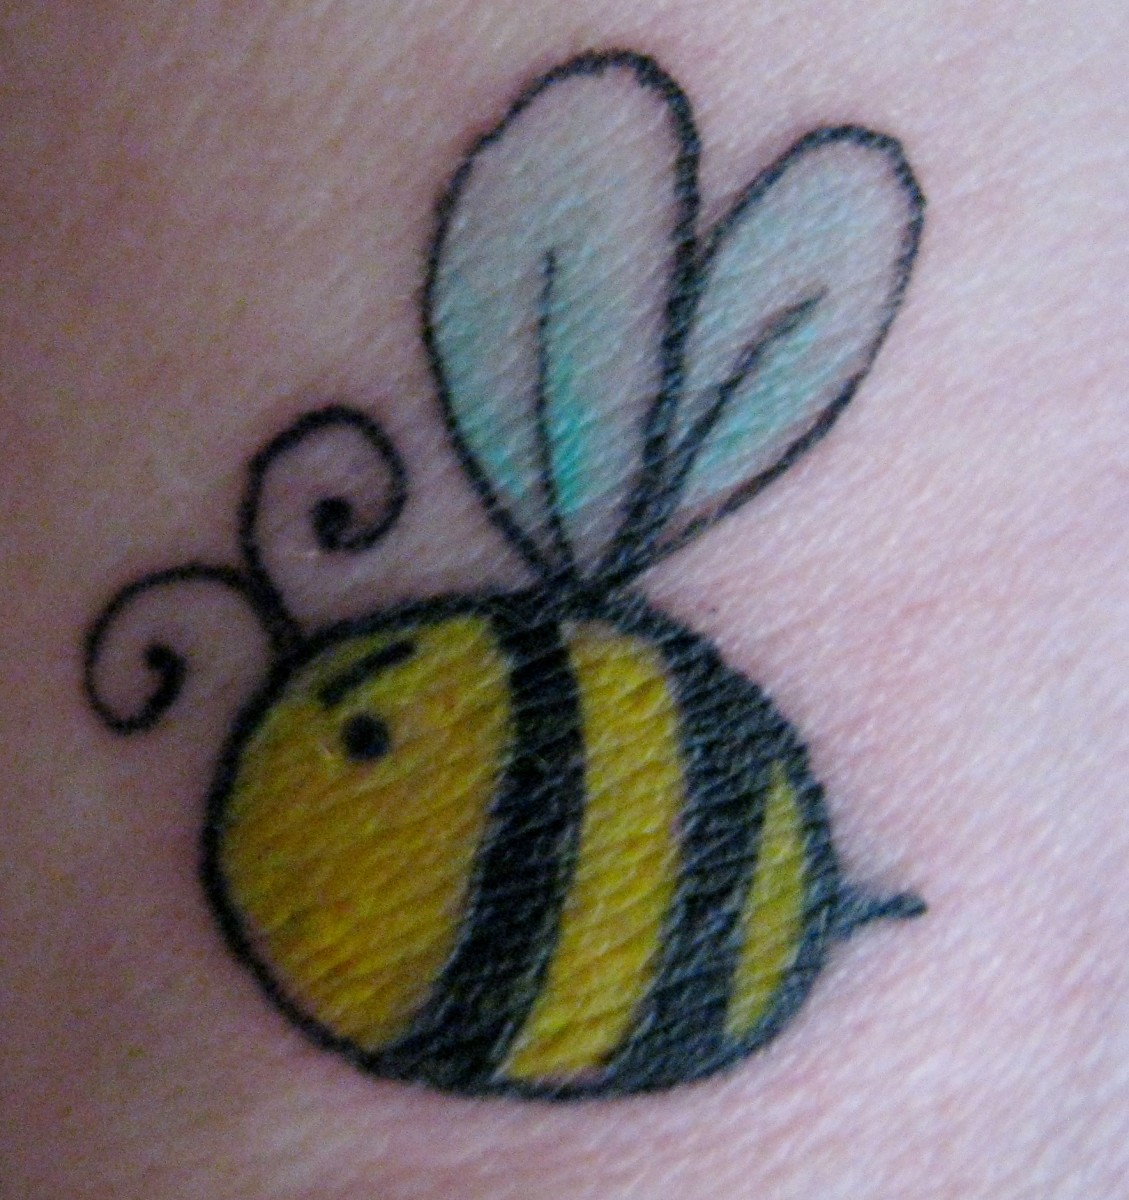 There is no hiding Angry Bee, she's on my wrist!